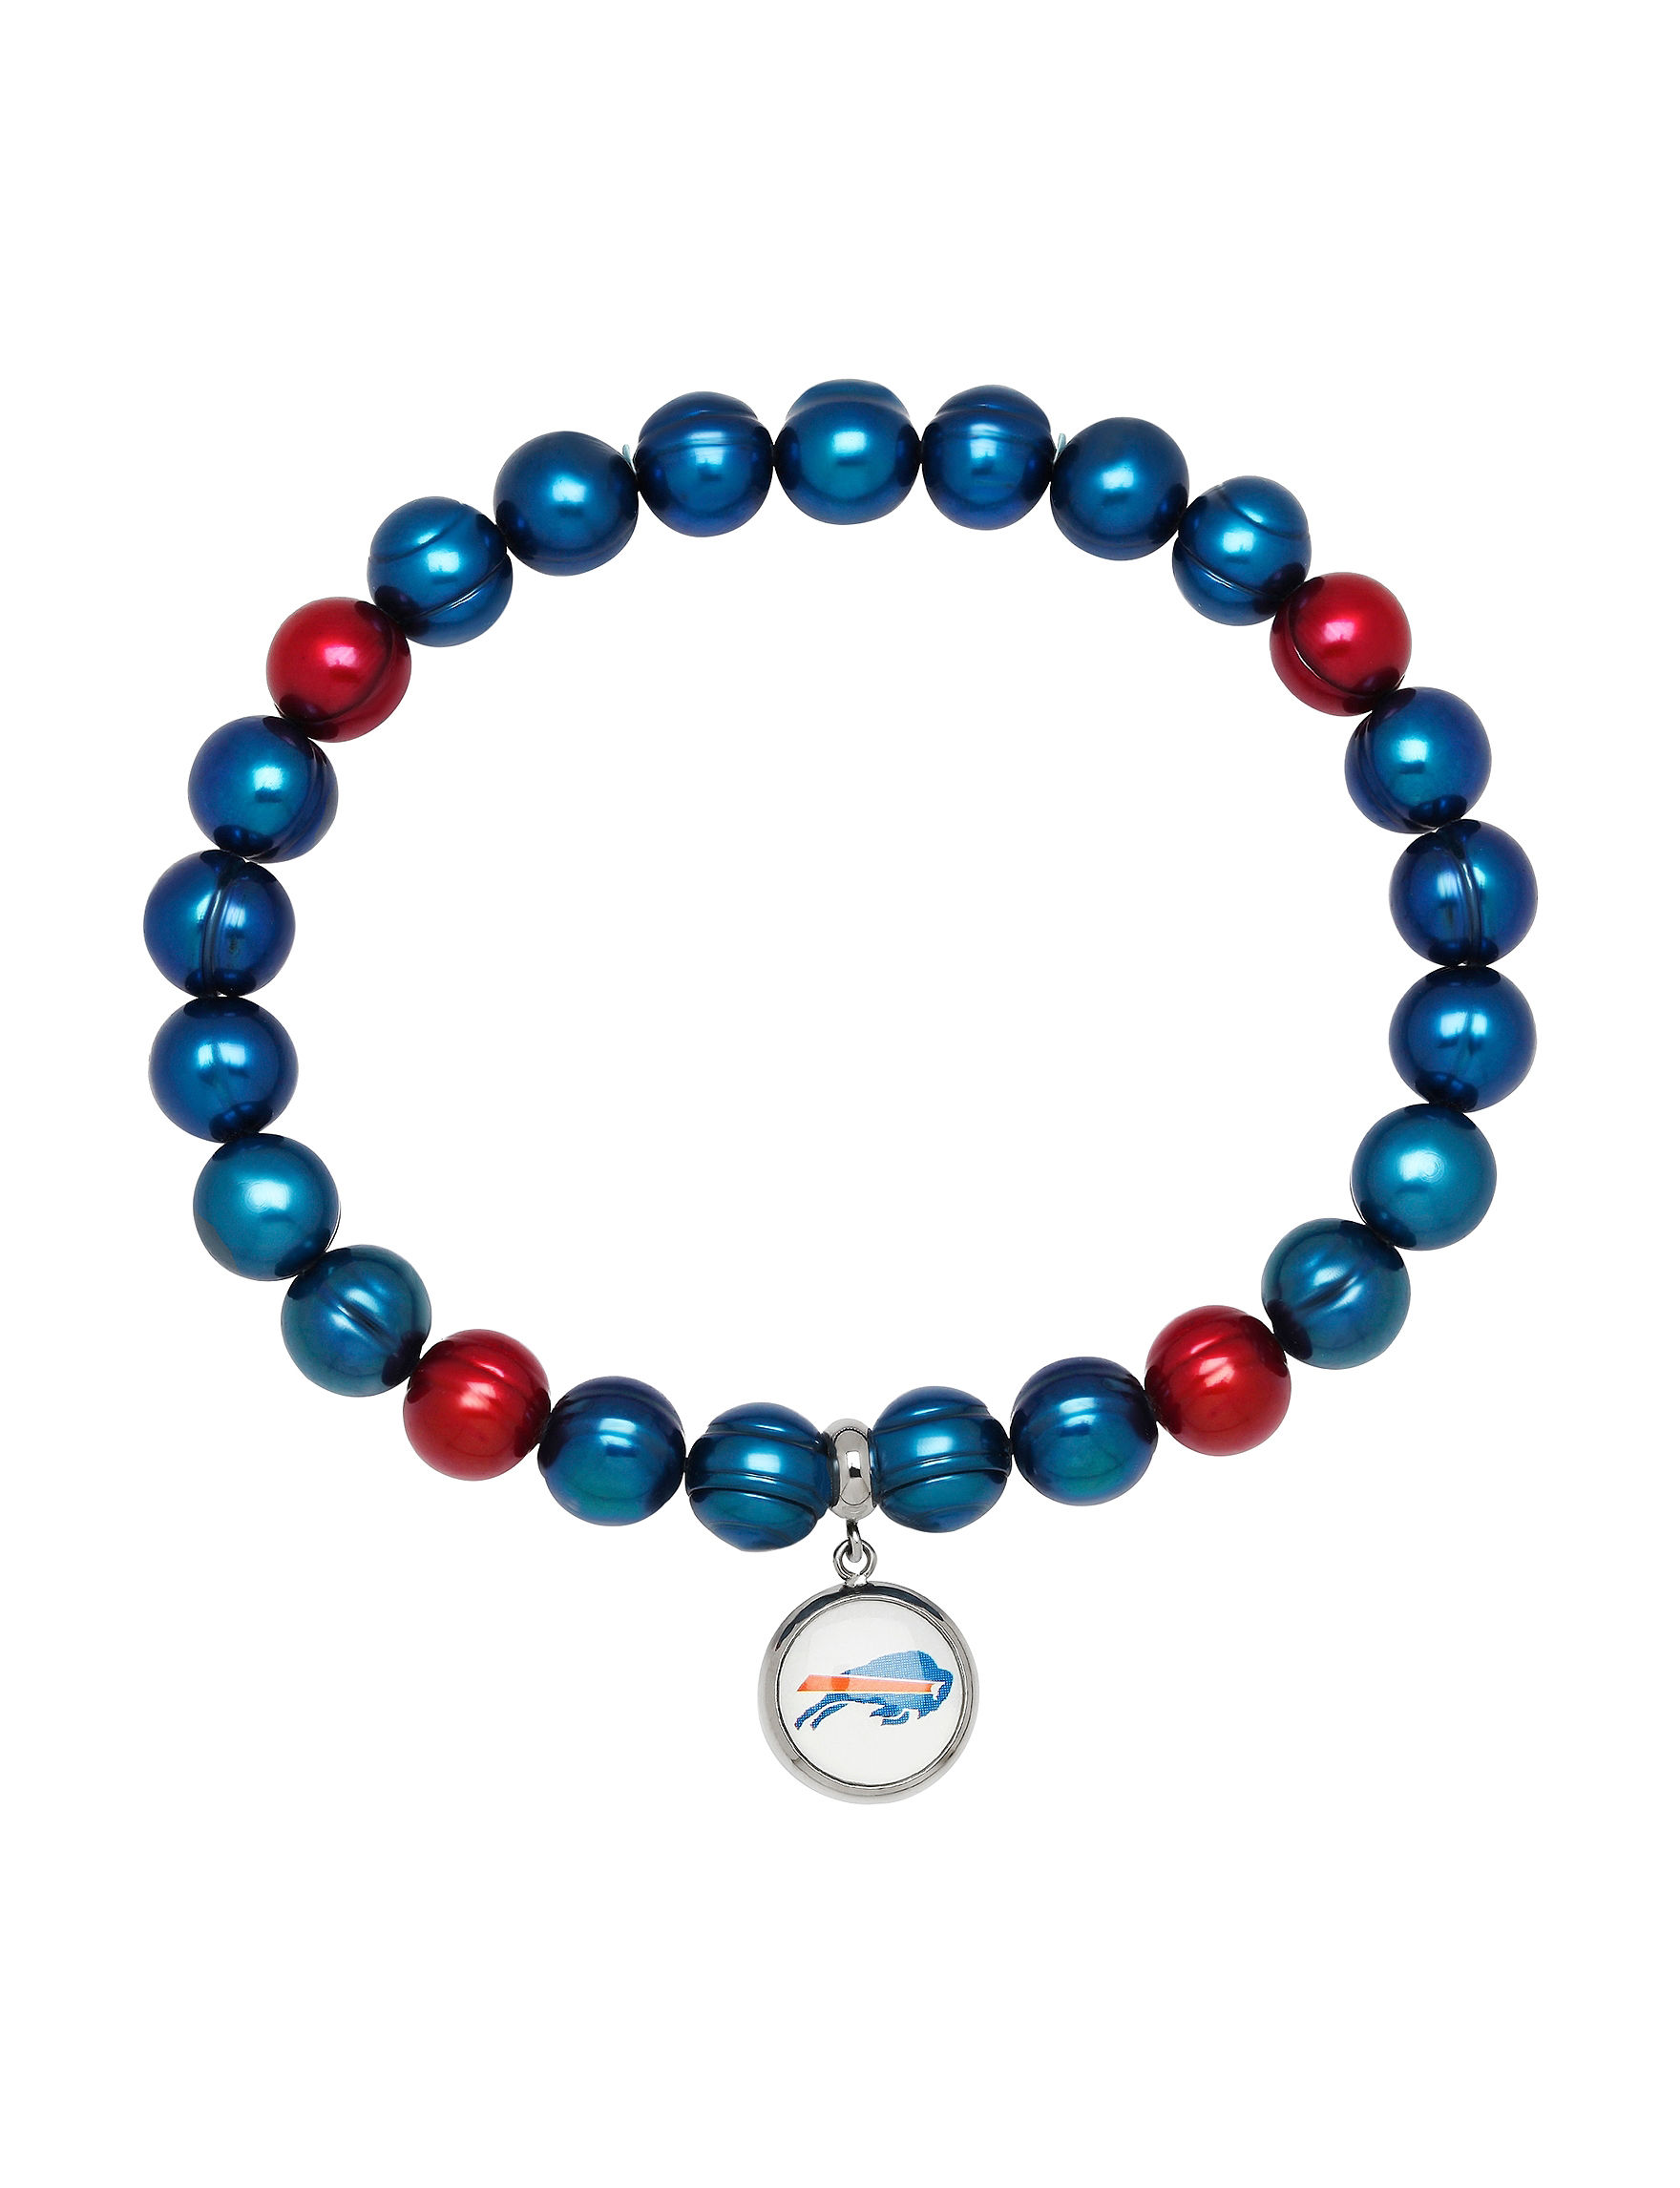 Aurafin Oro America Blue/ Red Bracelets Charms Fashion Jewelry NFL